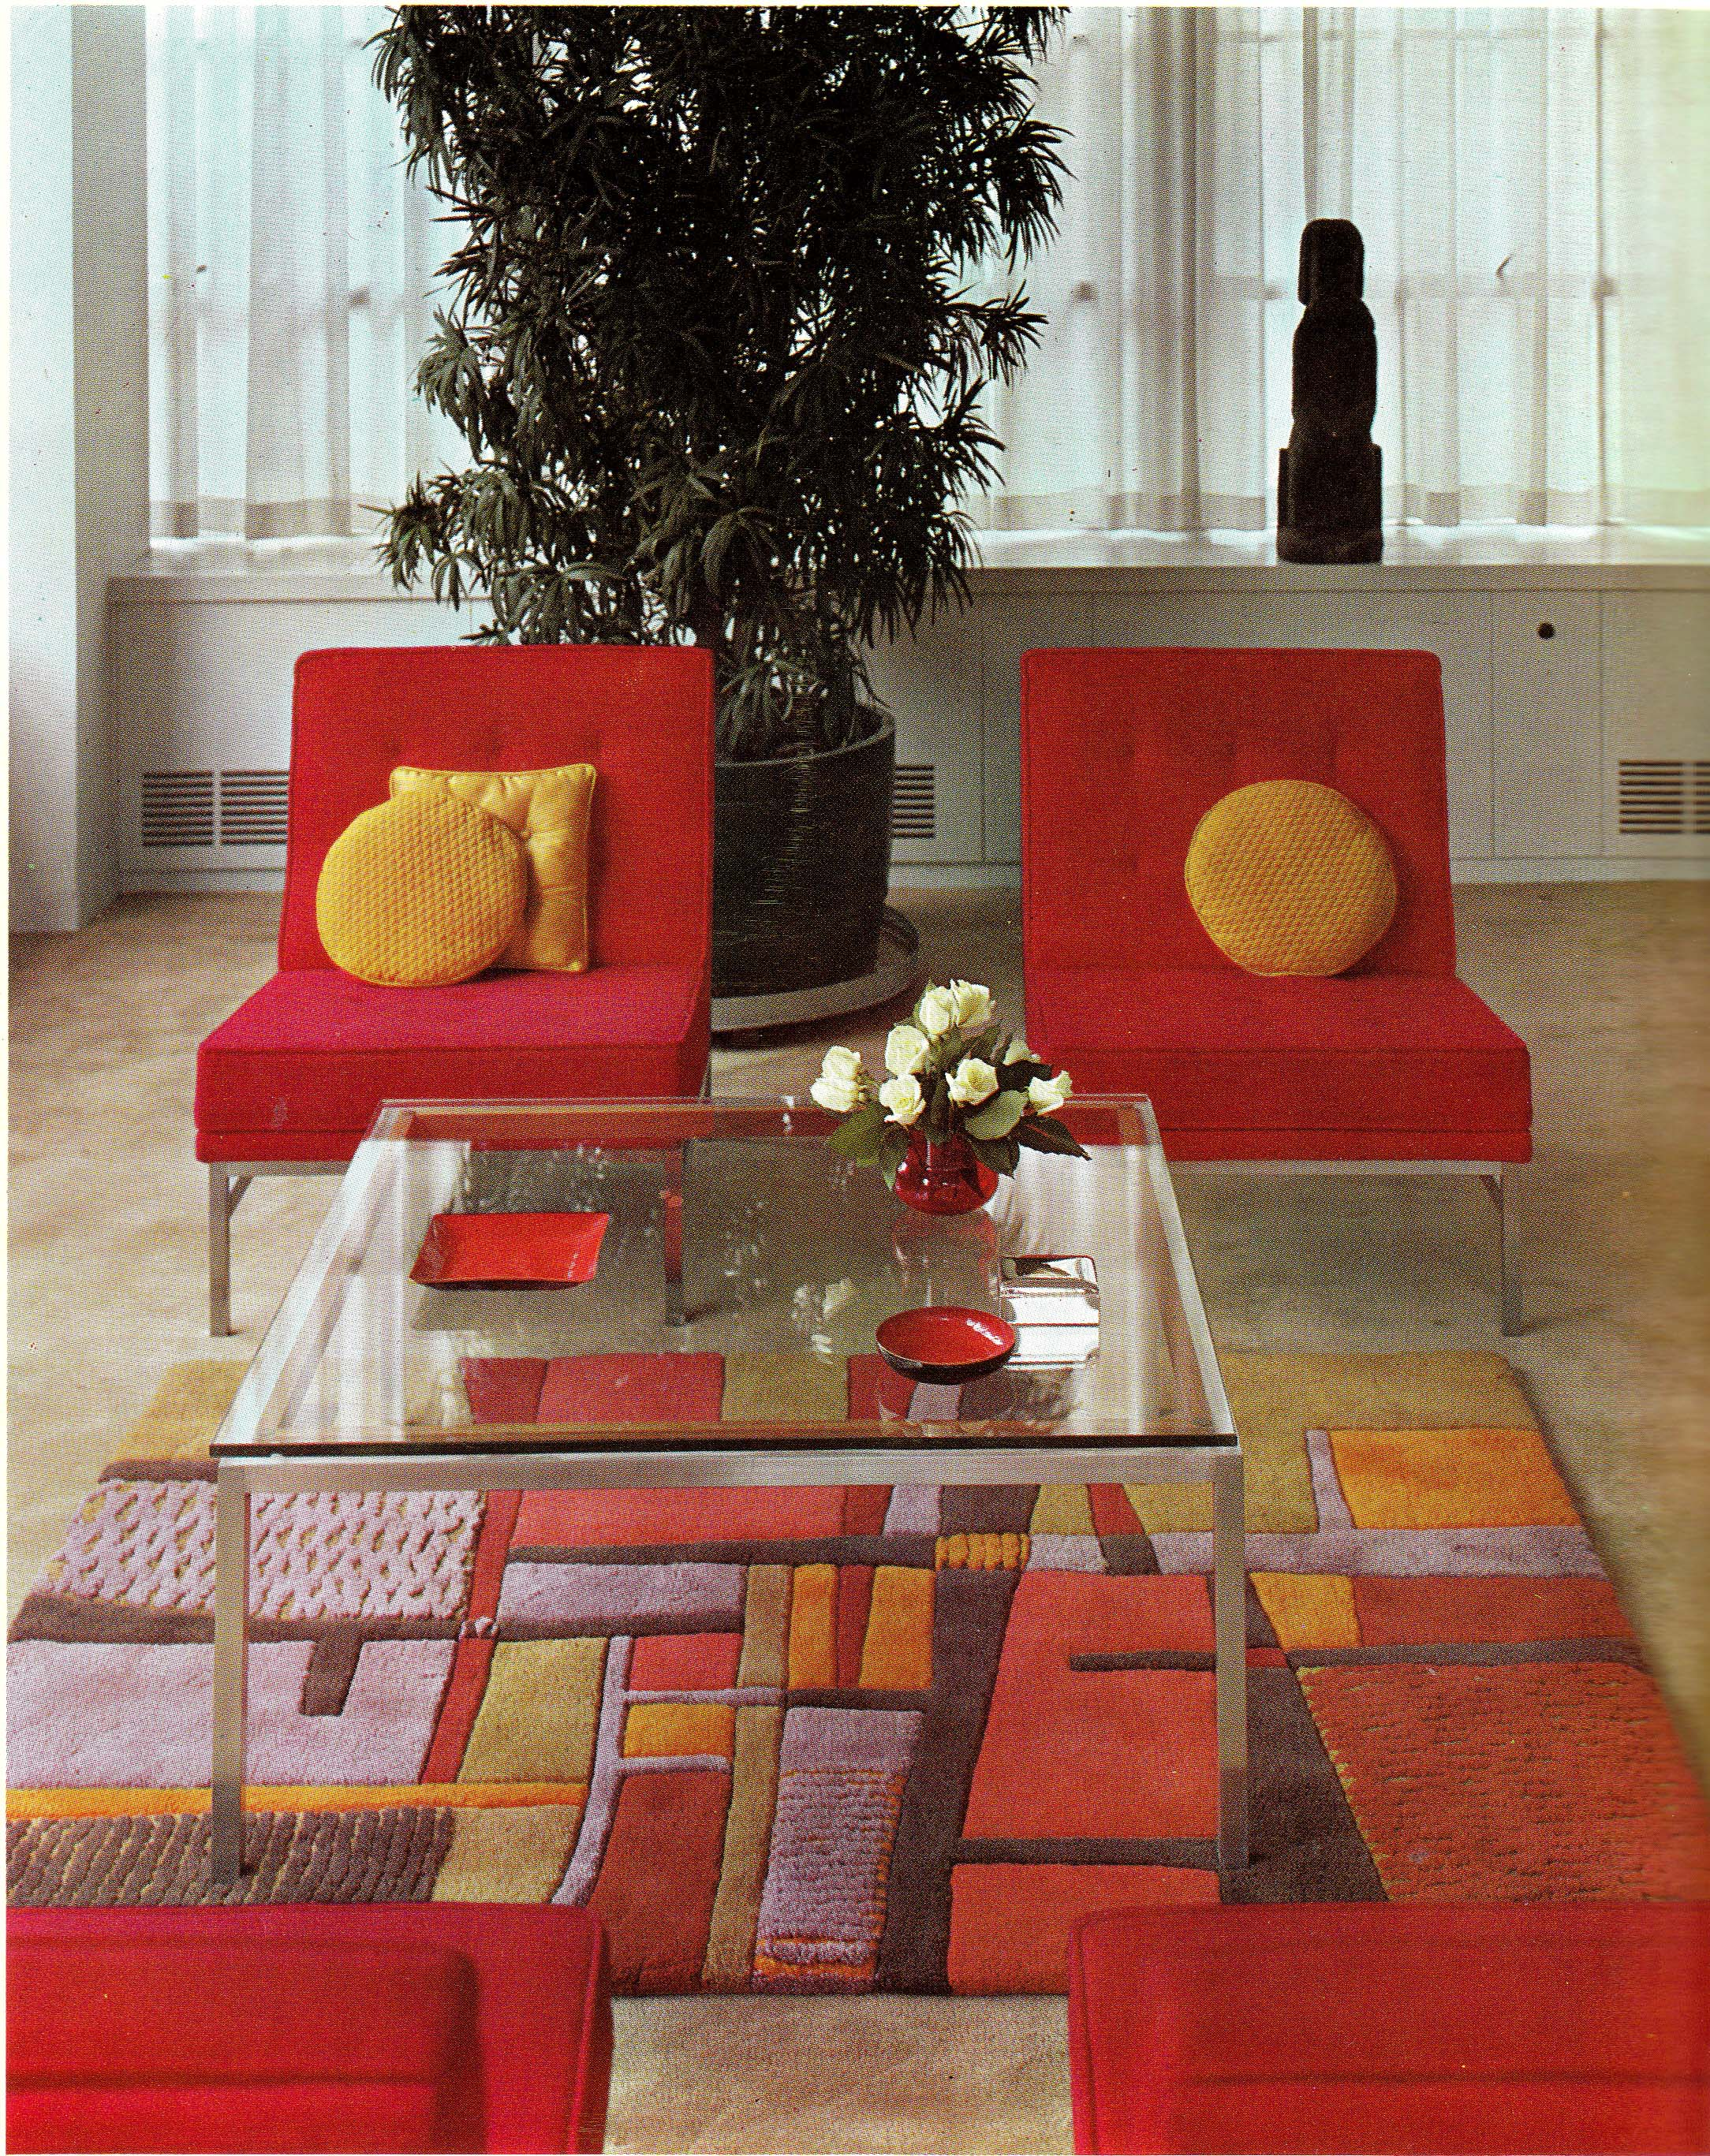 218_Interior Decoration A to Z (1965)